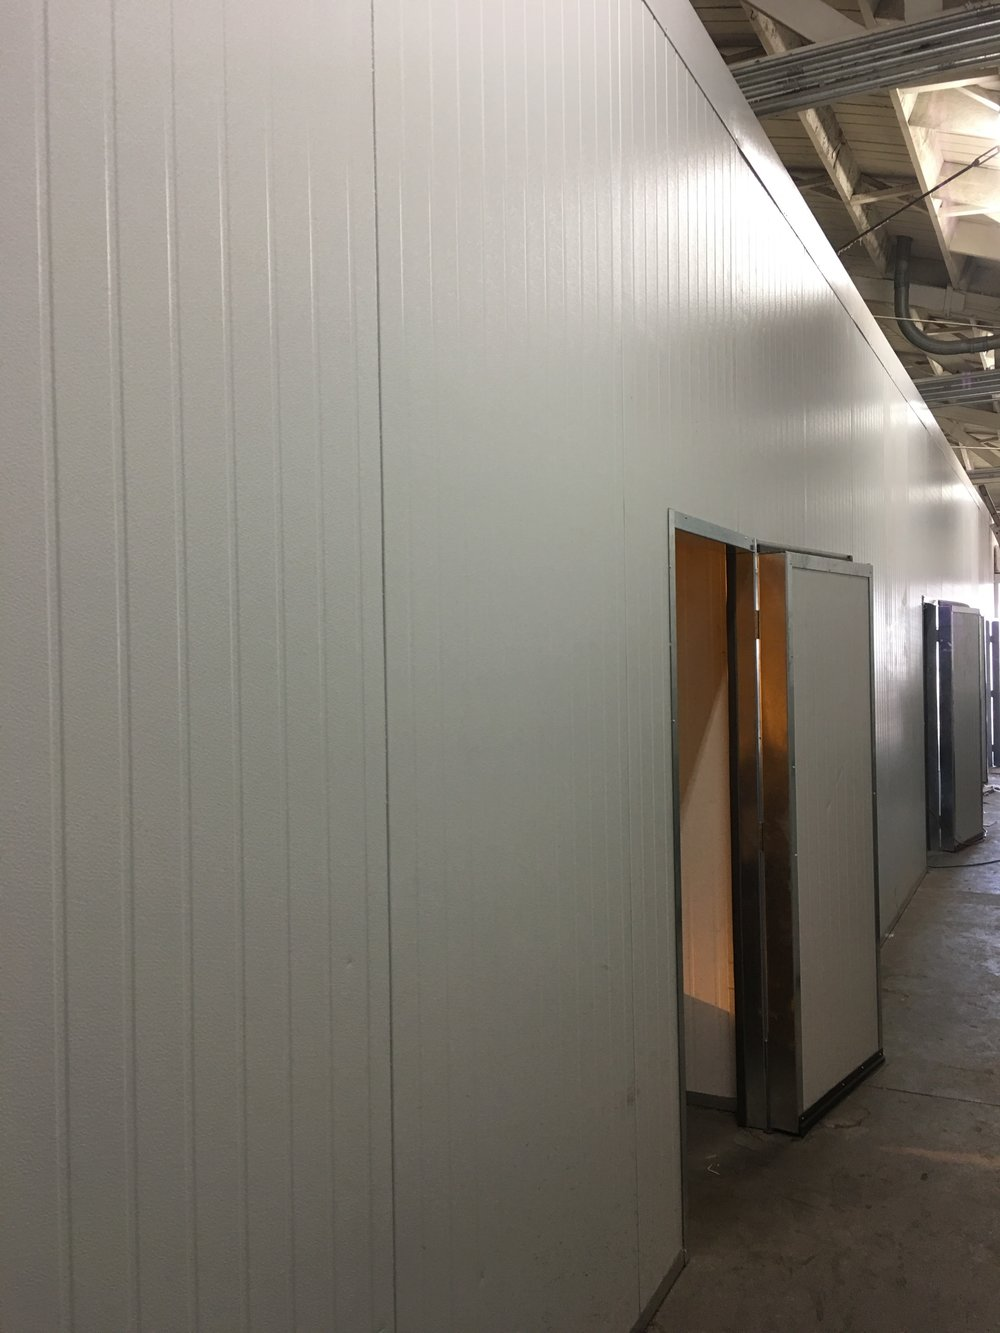 PANEL ROOMS FOR CULTIVATION